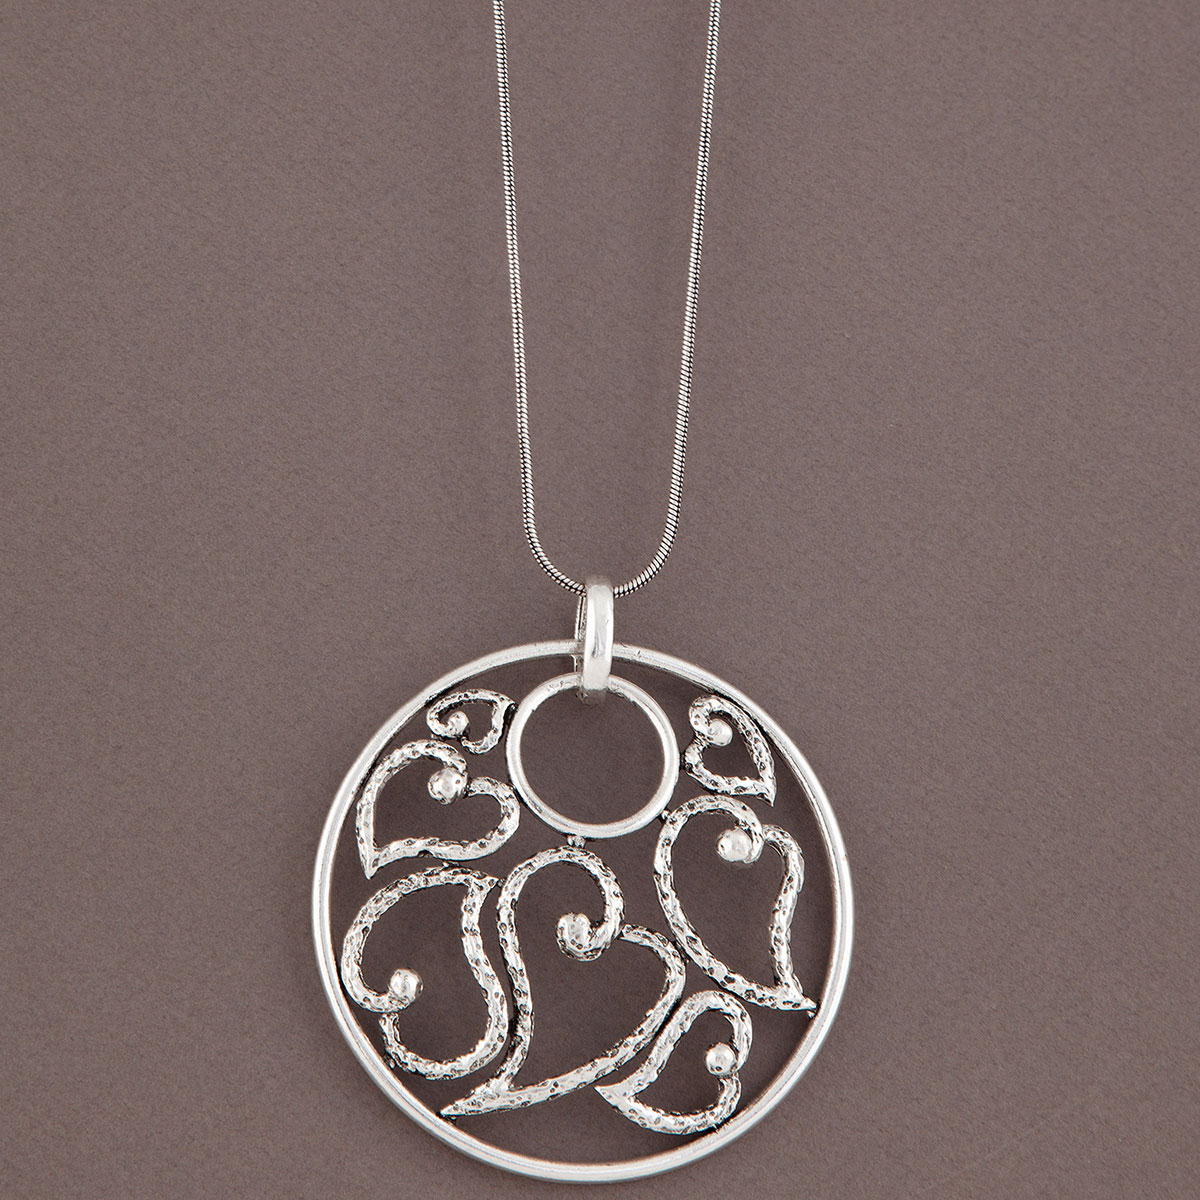 Silver Round Heart Medallion on Chain Necklace